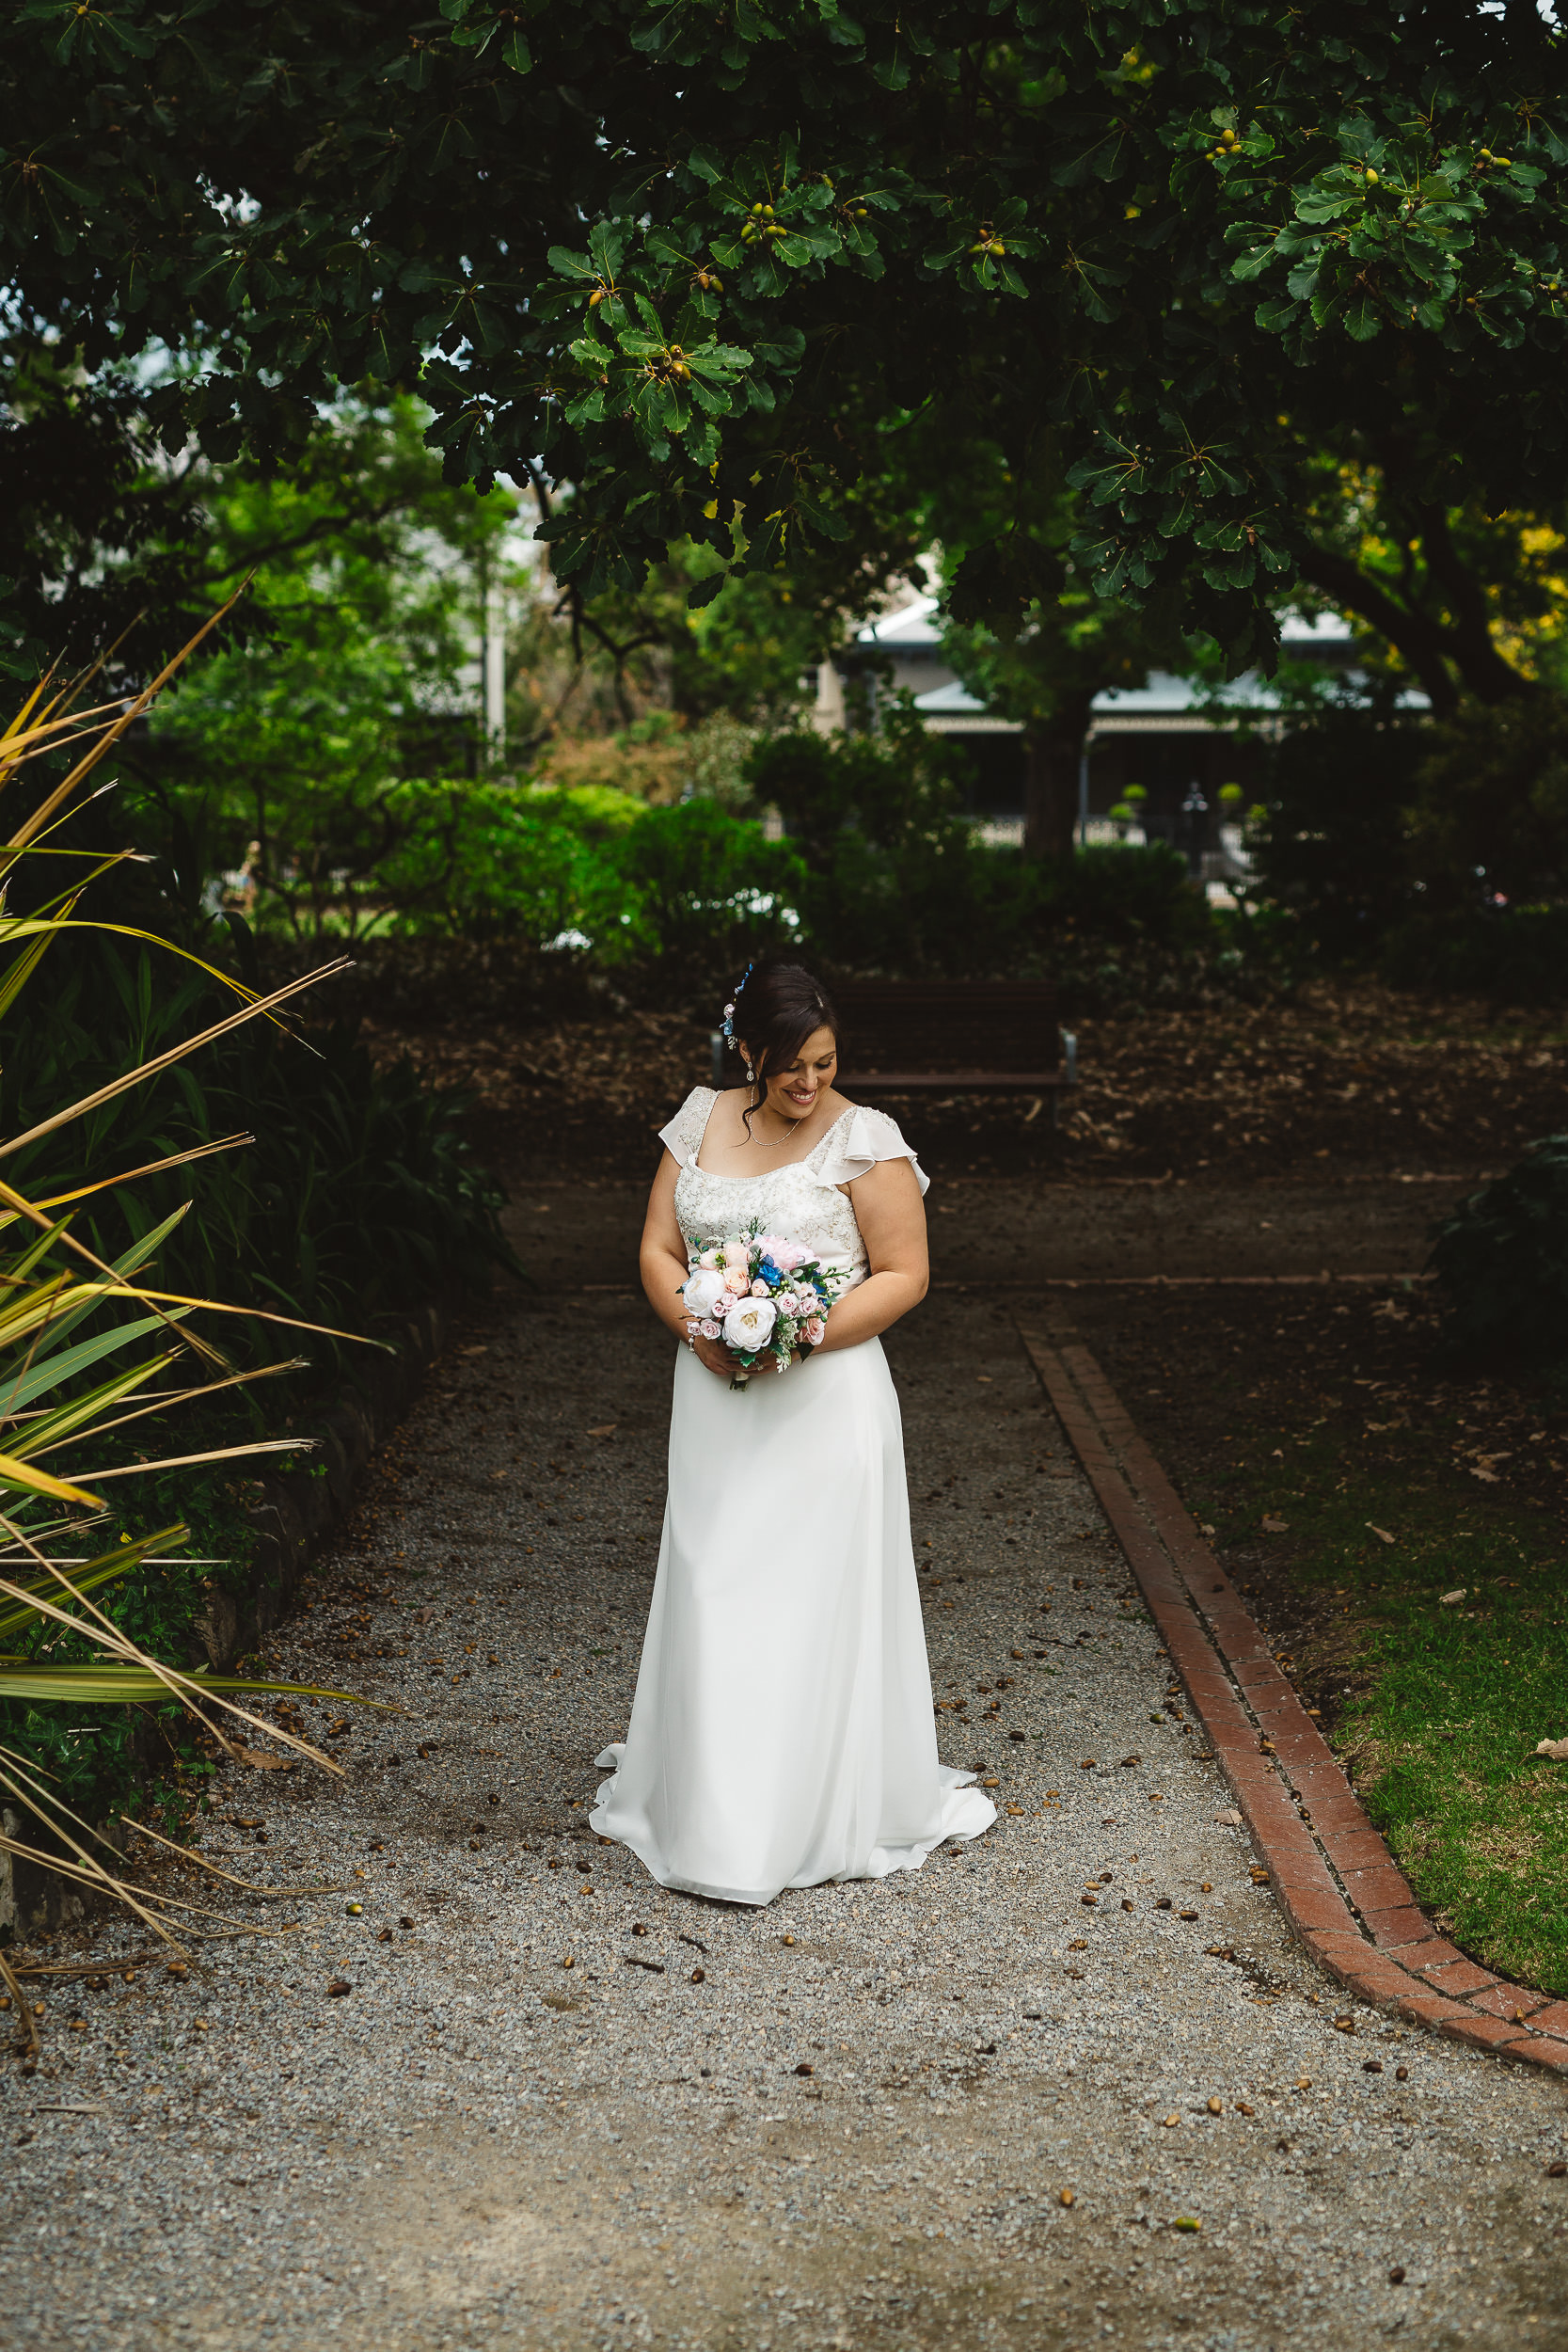 Melbourne-Wedding-Photographer-1088.jpg